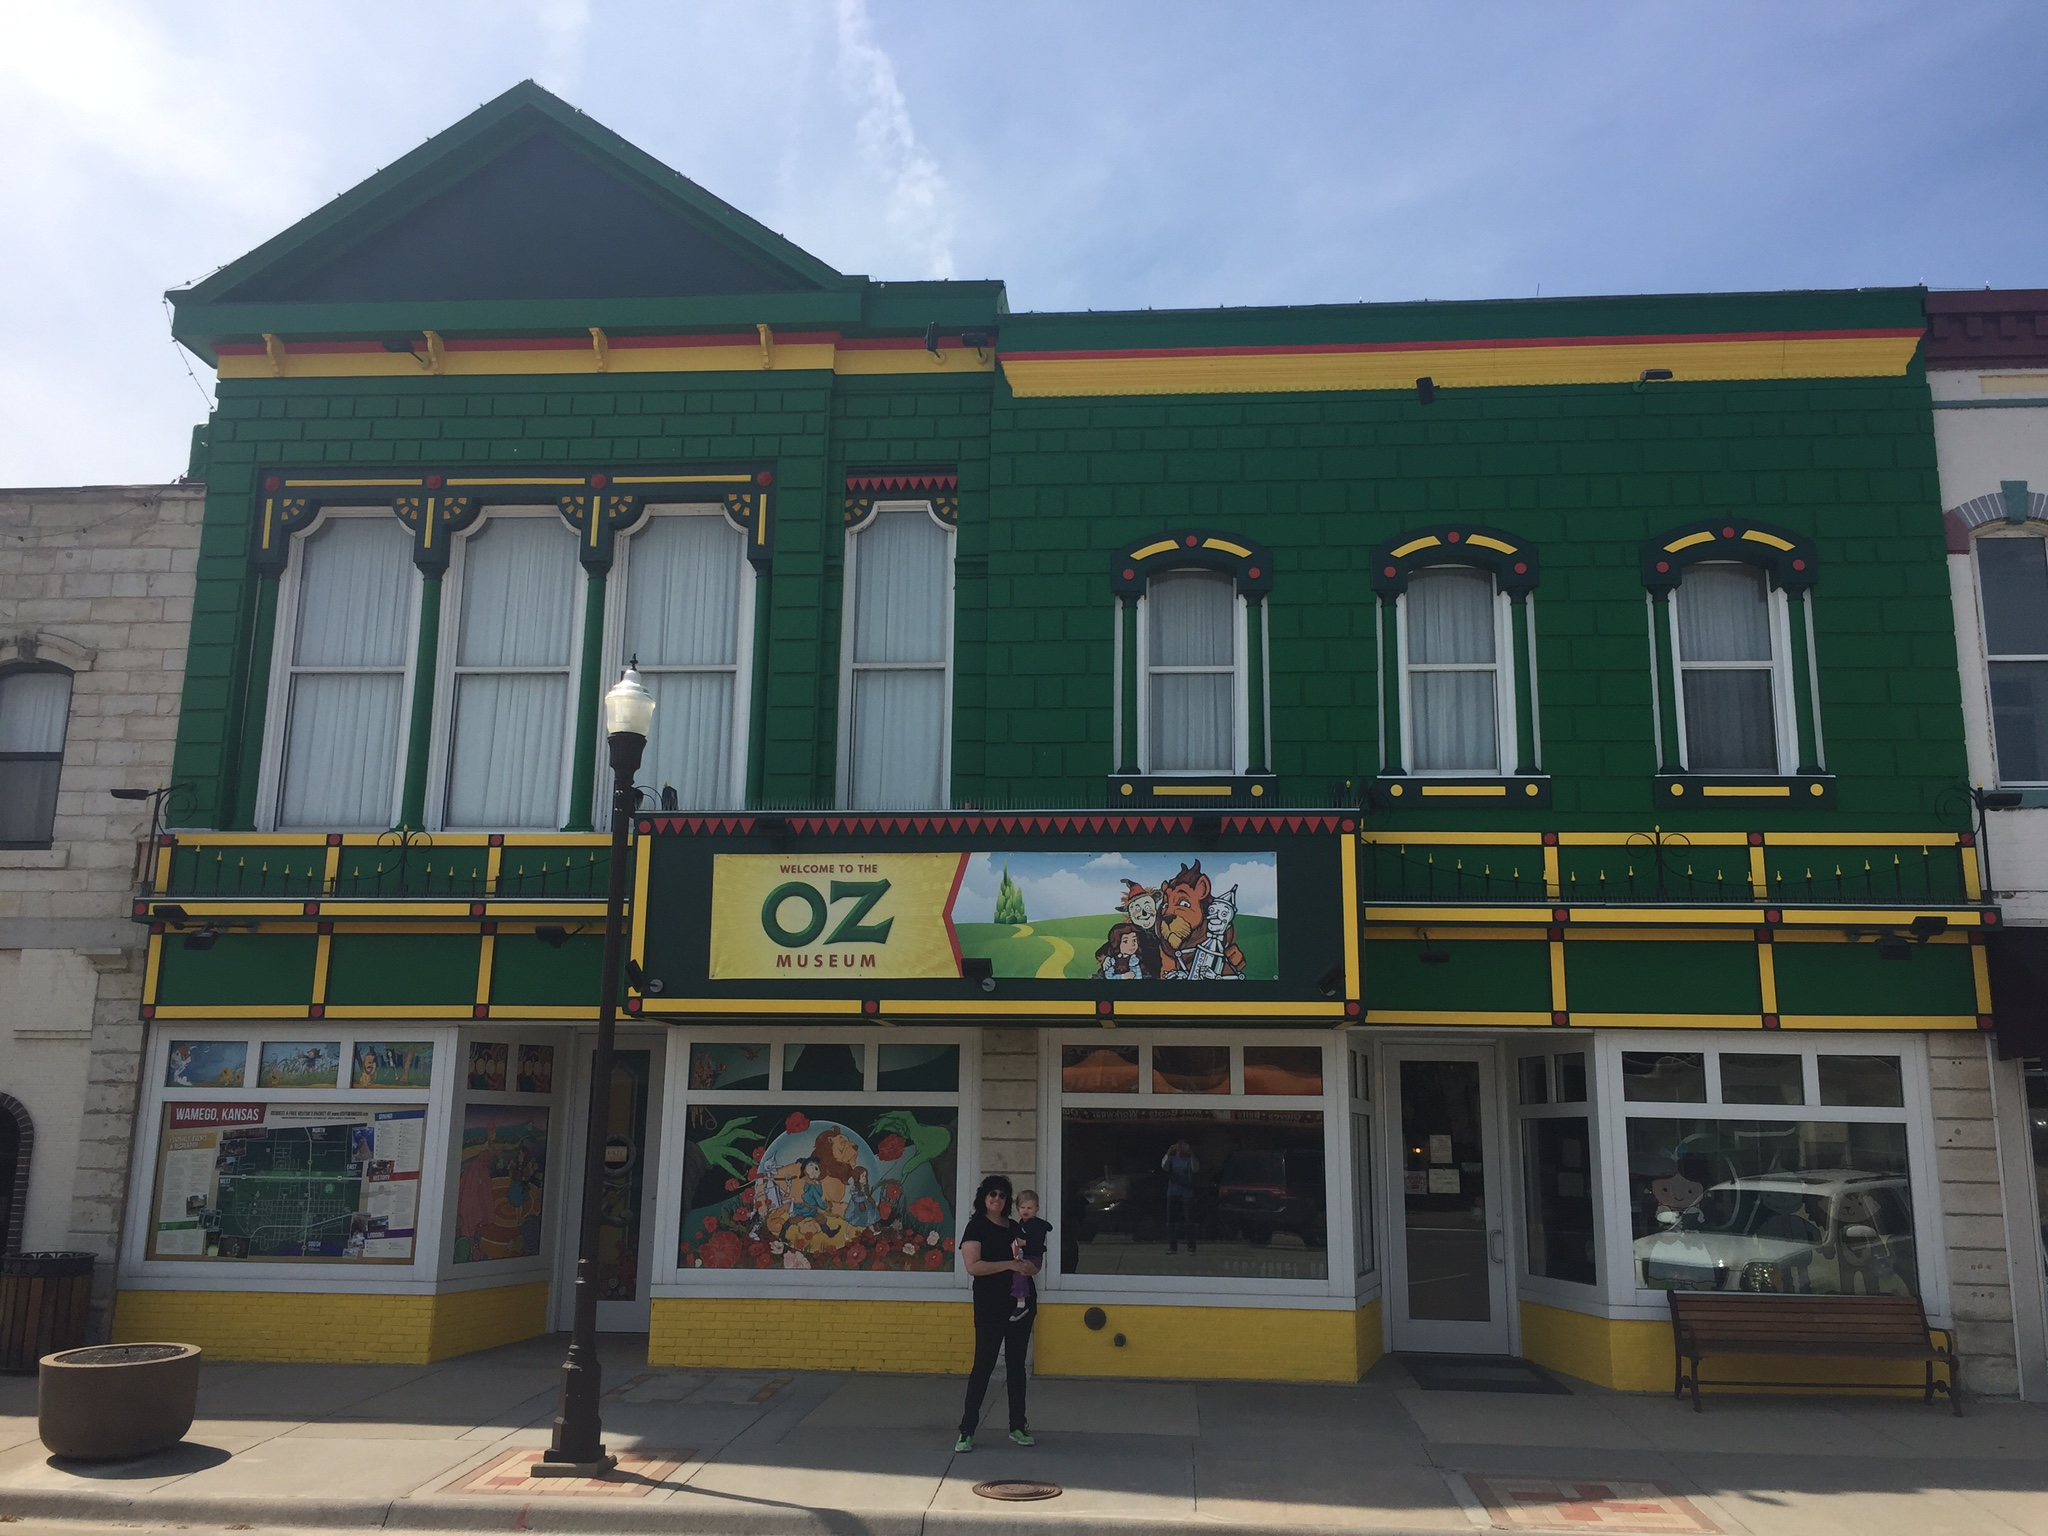 An Oz collectables museum, that is.